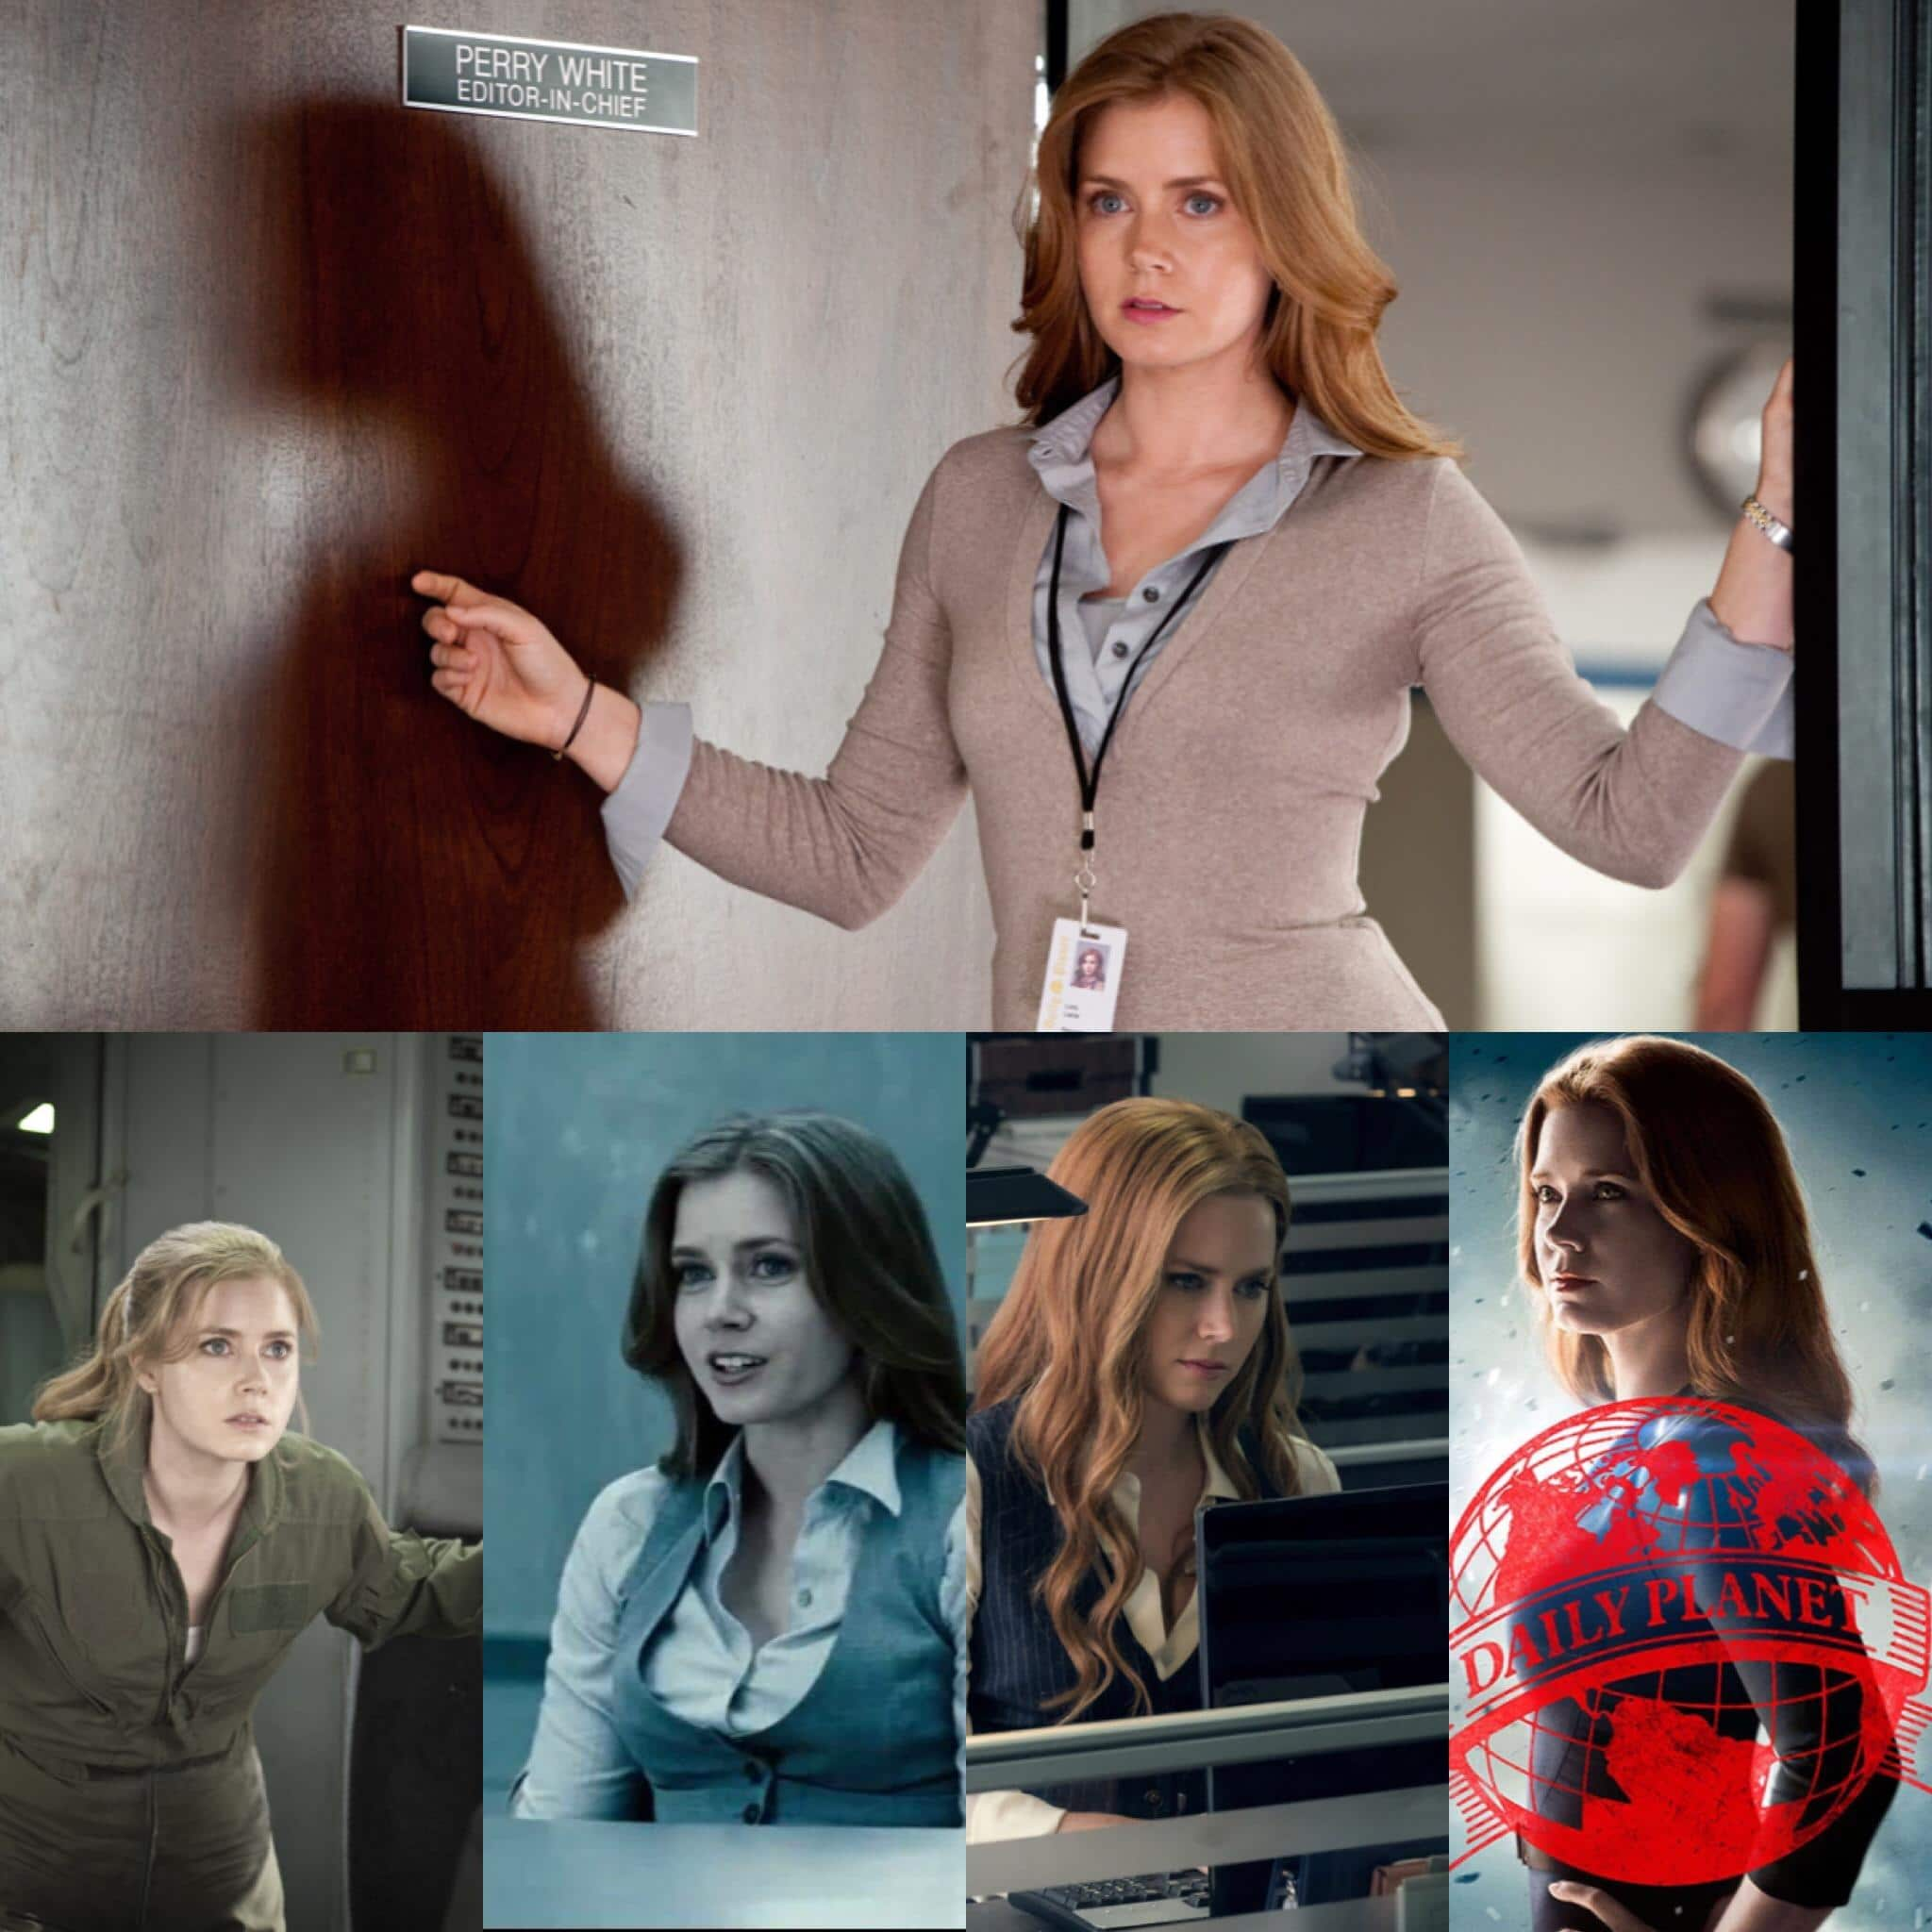 Amy Adams: Shown playing a major character in DC